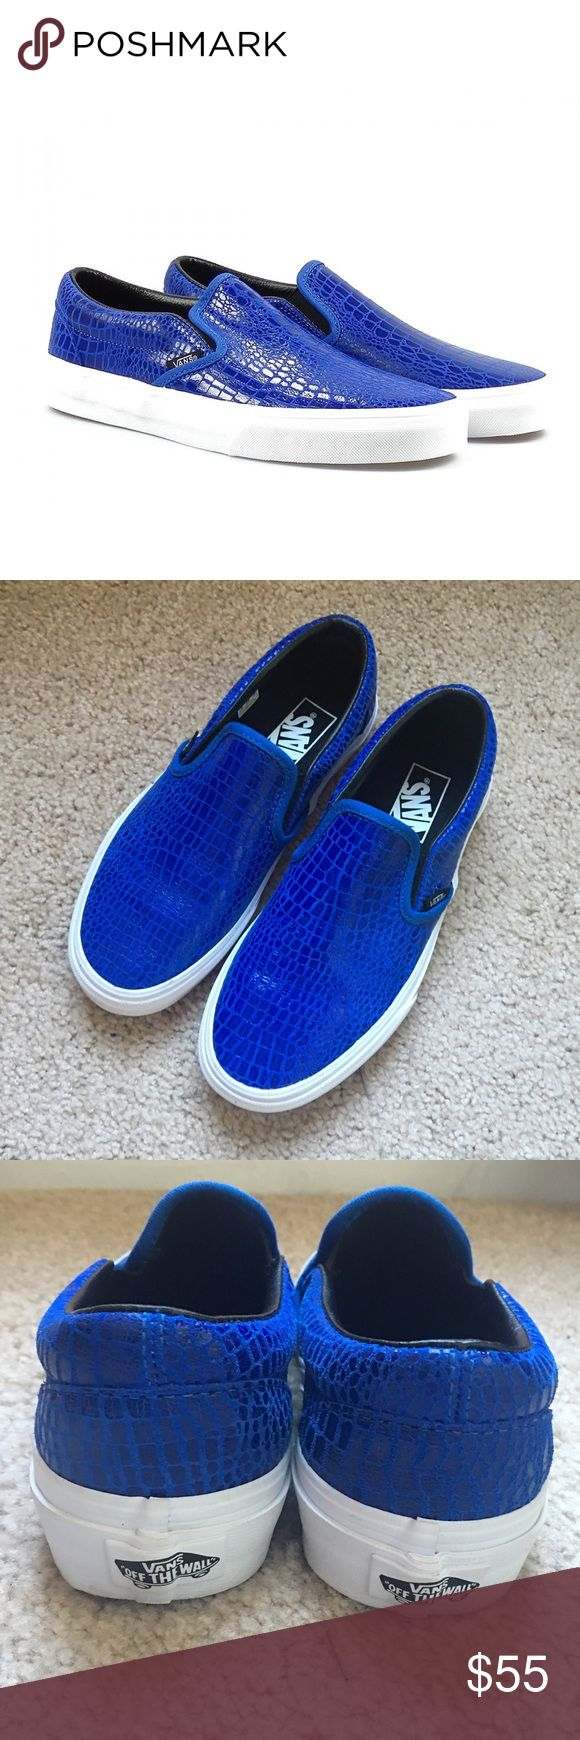 VANS royal blue leather sz: 7 BNWOB Brand new, never worn Vans sz: 7 women's. I do not have the box. Royal blue snakeskin print all leather. These are absolutely gorgeous! Price is FIRM! Please do not ask me to trade, as you will be ignored! Vans Shoes Sneakers